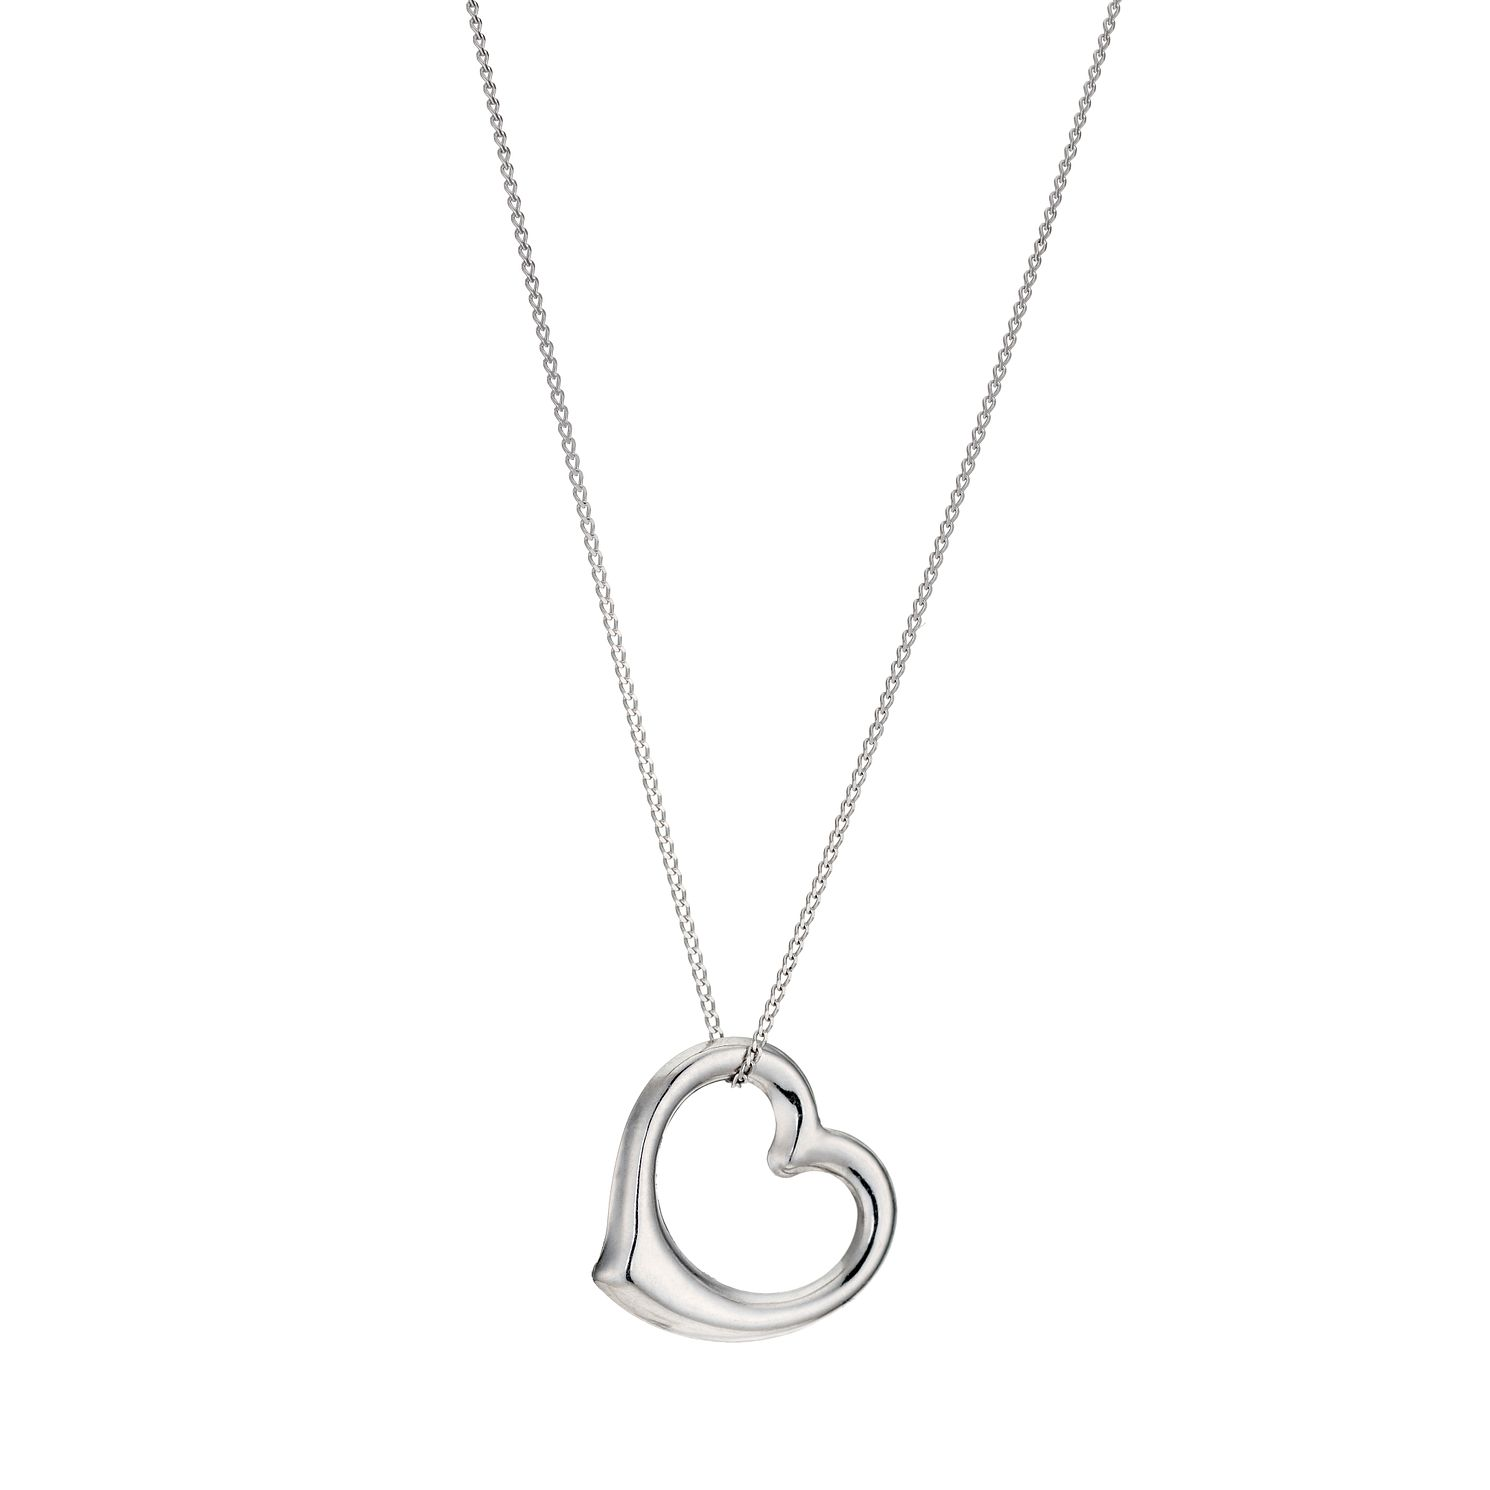 necklaces gb yours truly mini necklace jewellery pendant pave en heart